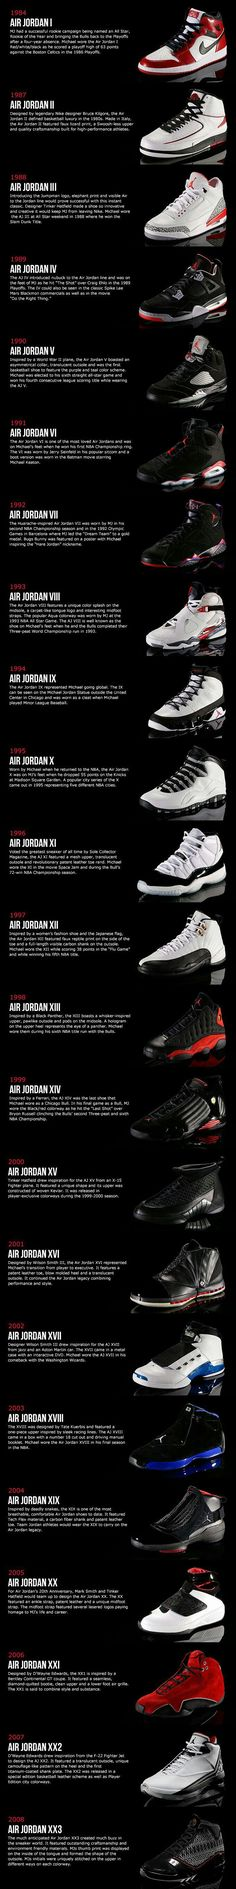 big sale 7802e 0217e History of Air Jordan Shoes. Air Jordan is a brand of basketball footwear  and athletic clothing produced by Nike and endorsed and created for Chicago  Bulls ...